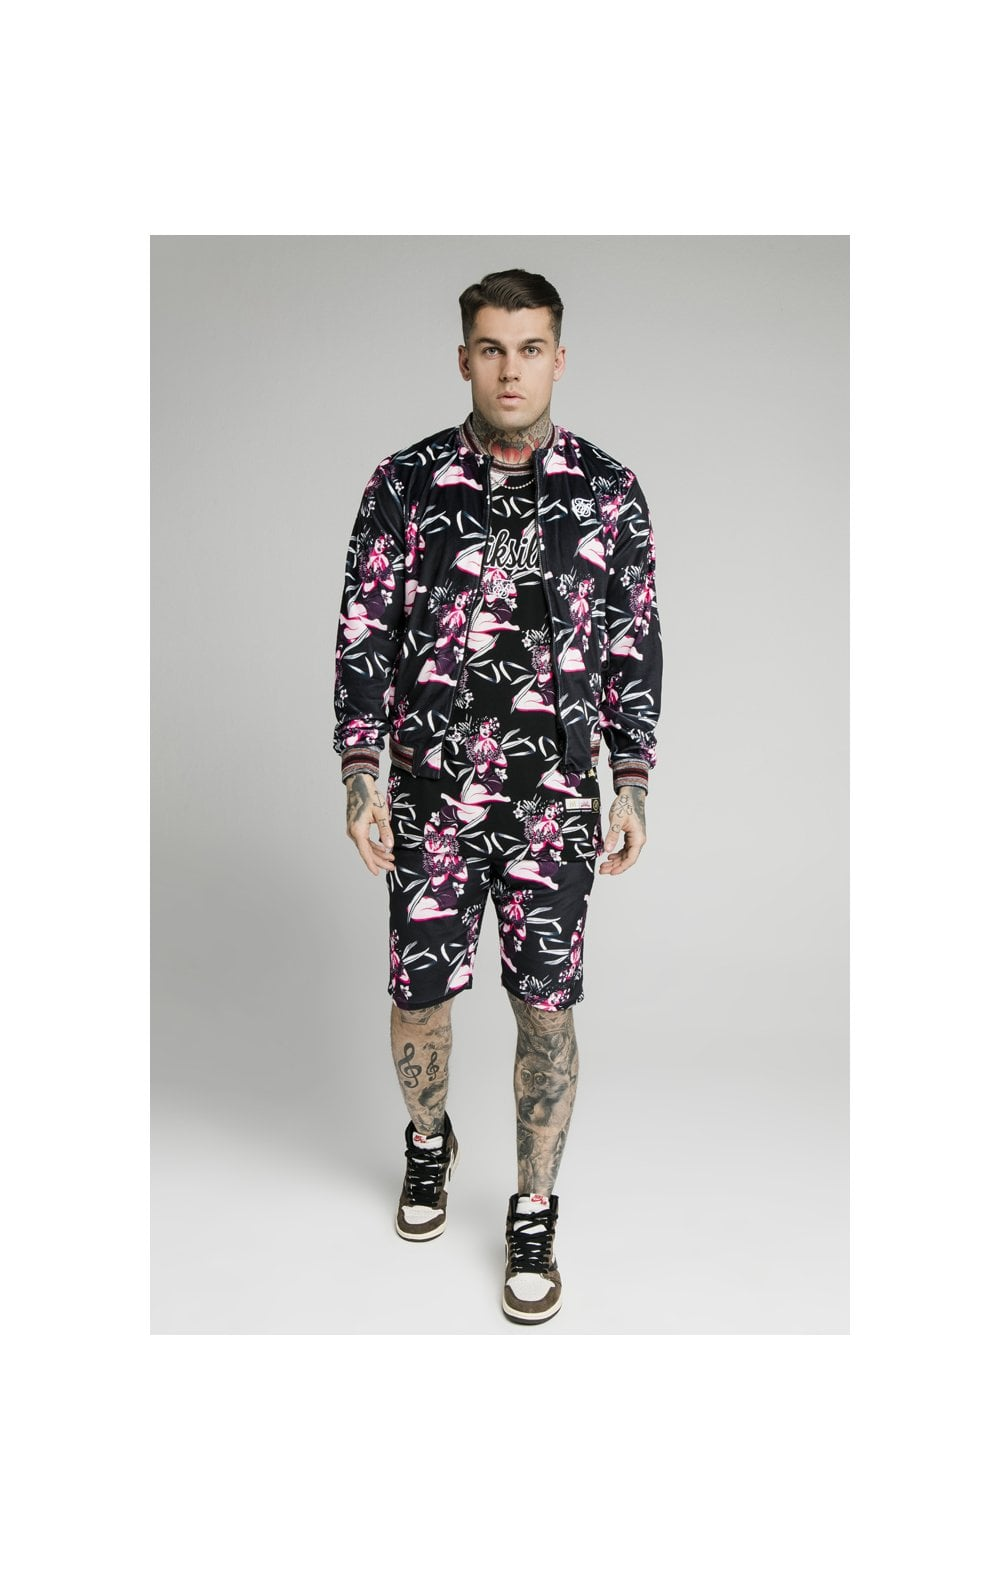 Load image into Gallery viewer, SikSilk Velour Tropics Bomber - Black & Tropics (4)